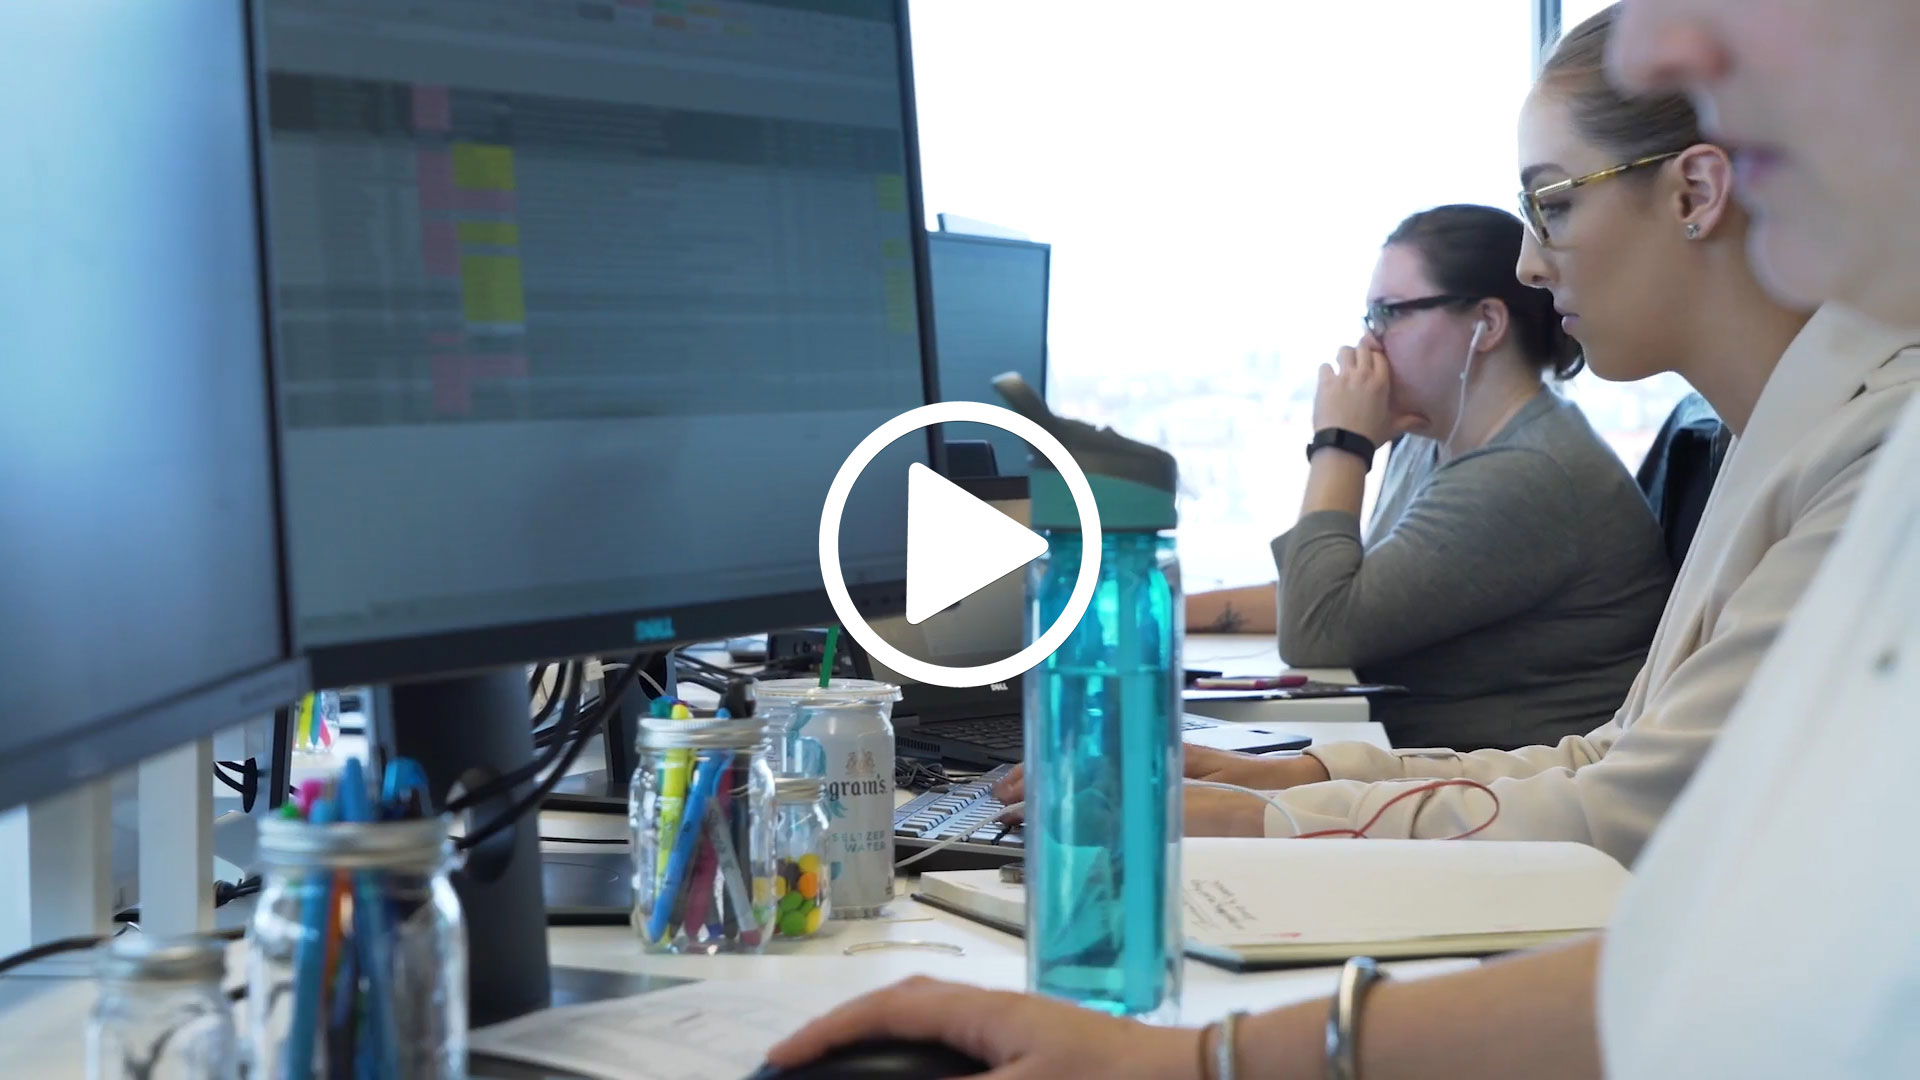 Watch our careers video for available job opening Senior Analyst, Ecommerce Analytics in Hoboken, NJ